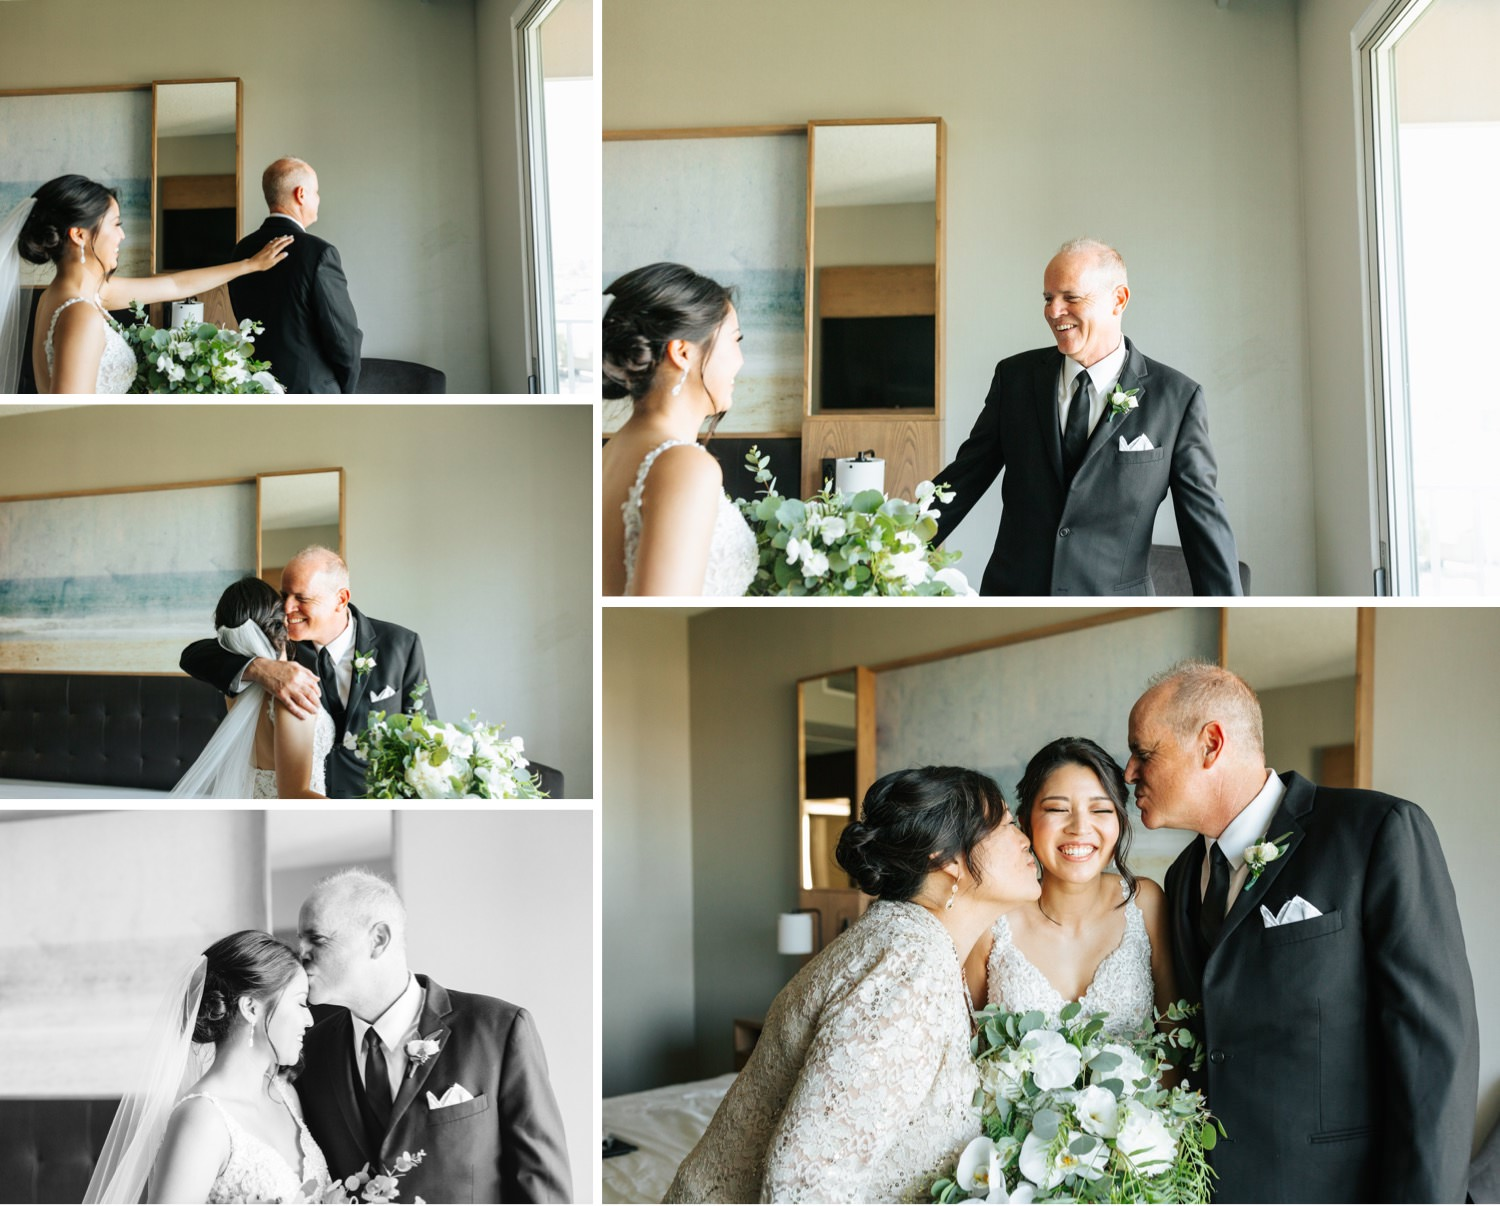 Brides first look with her dad - First Look - https://brittneyhannonphotography.com